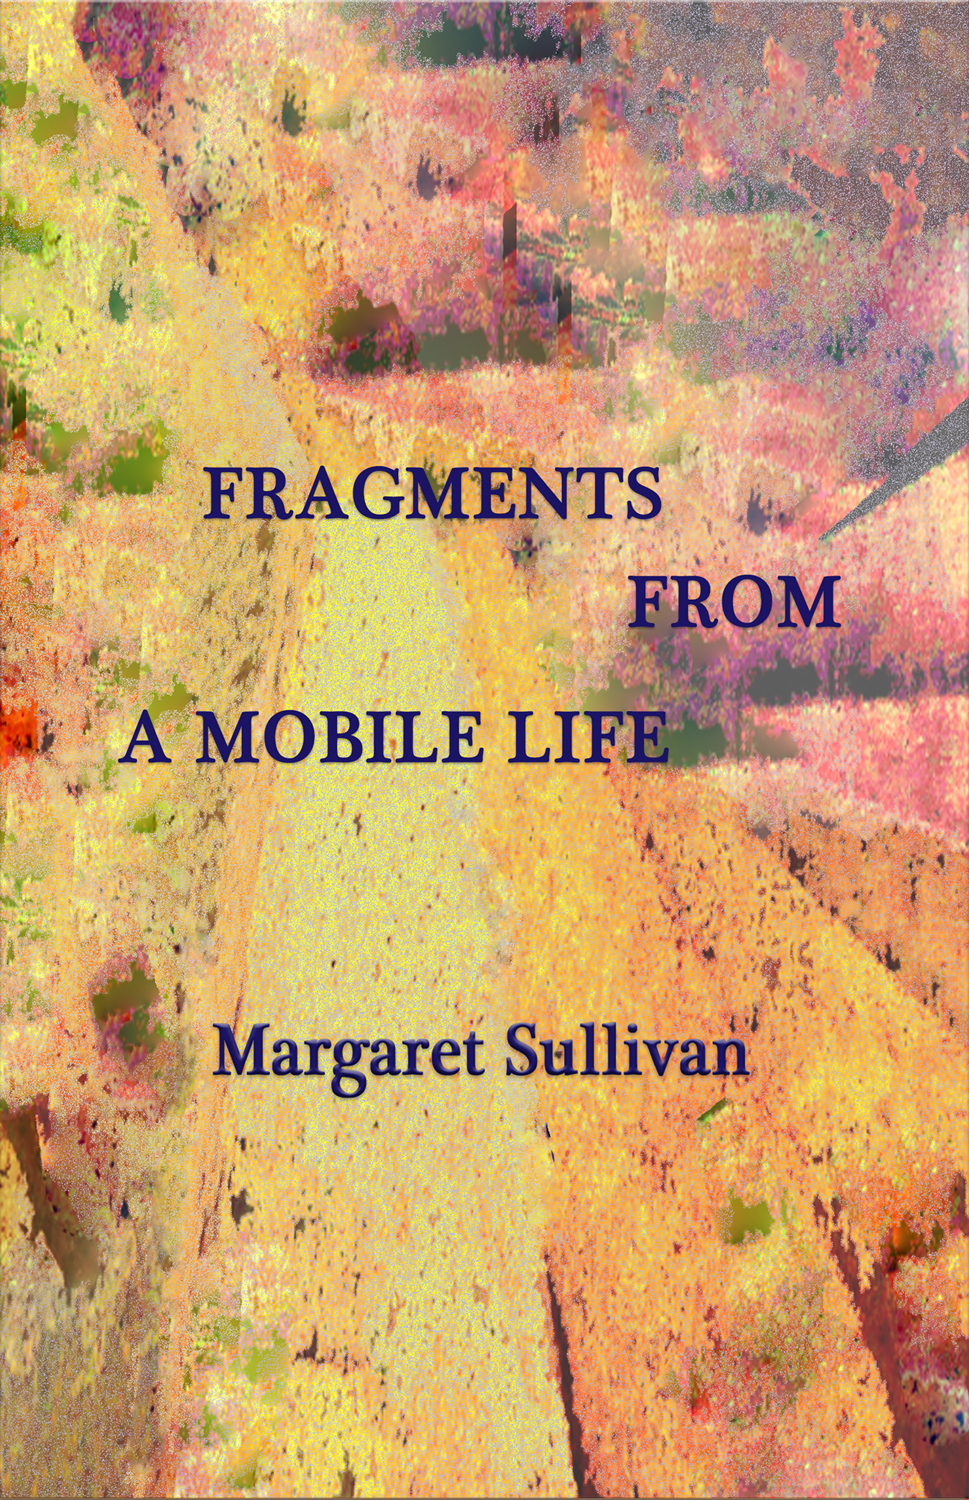 Fragments From a Mobile Life